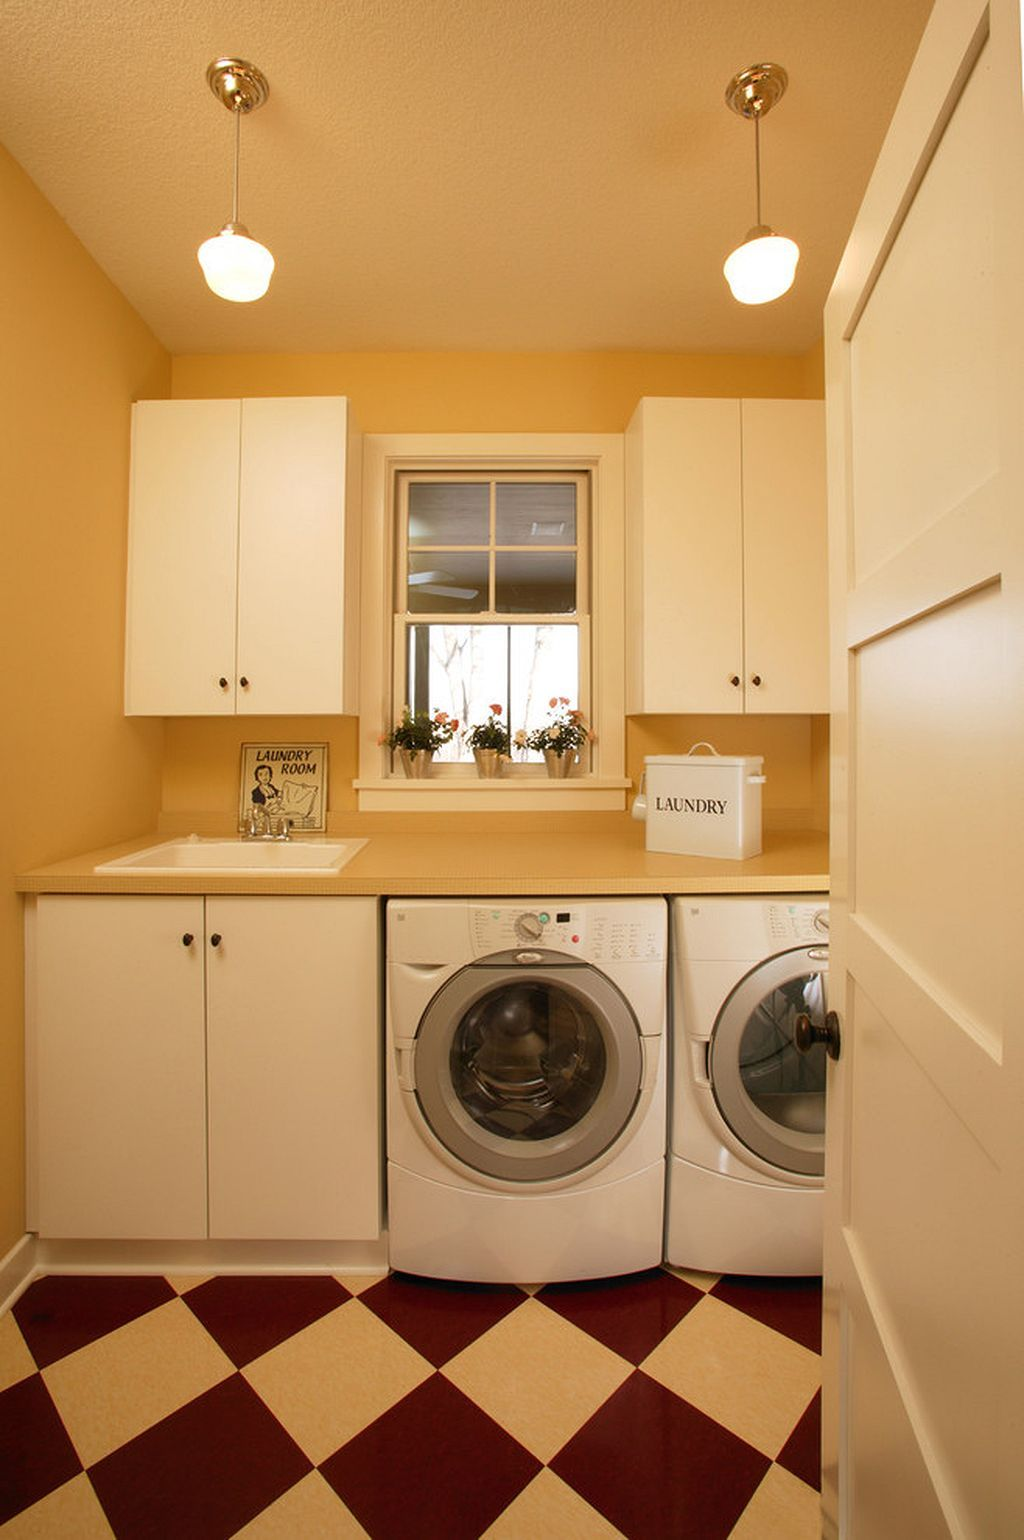 153 modern laundry room design ideas | modern laundry rooms